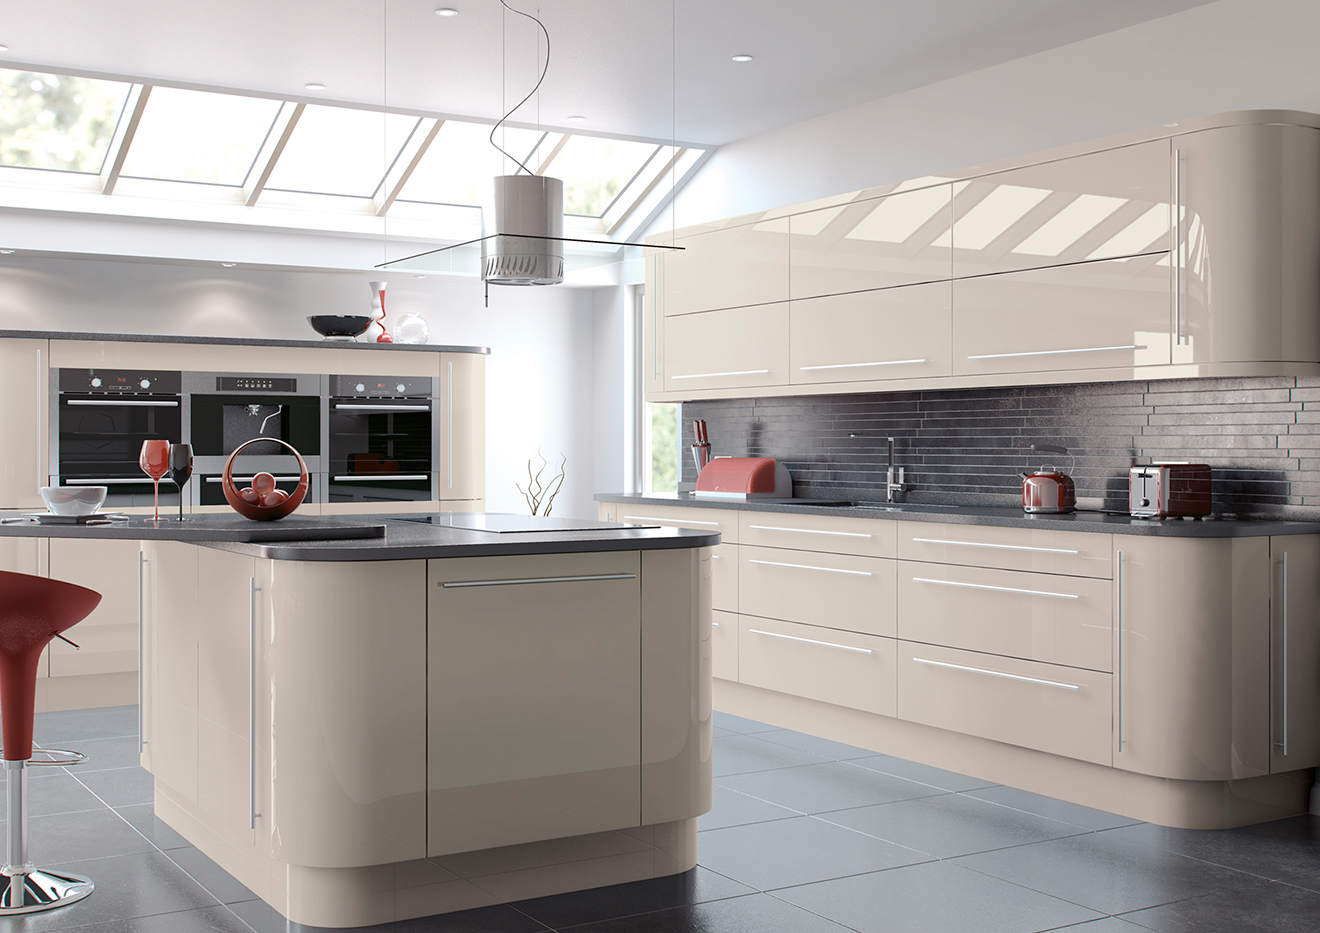 Buy London Kitchens Dark Units